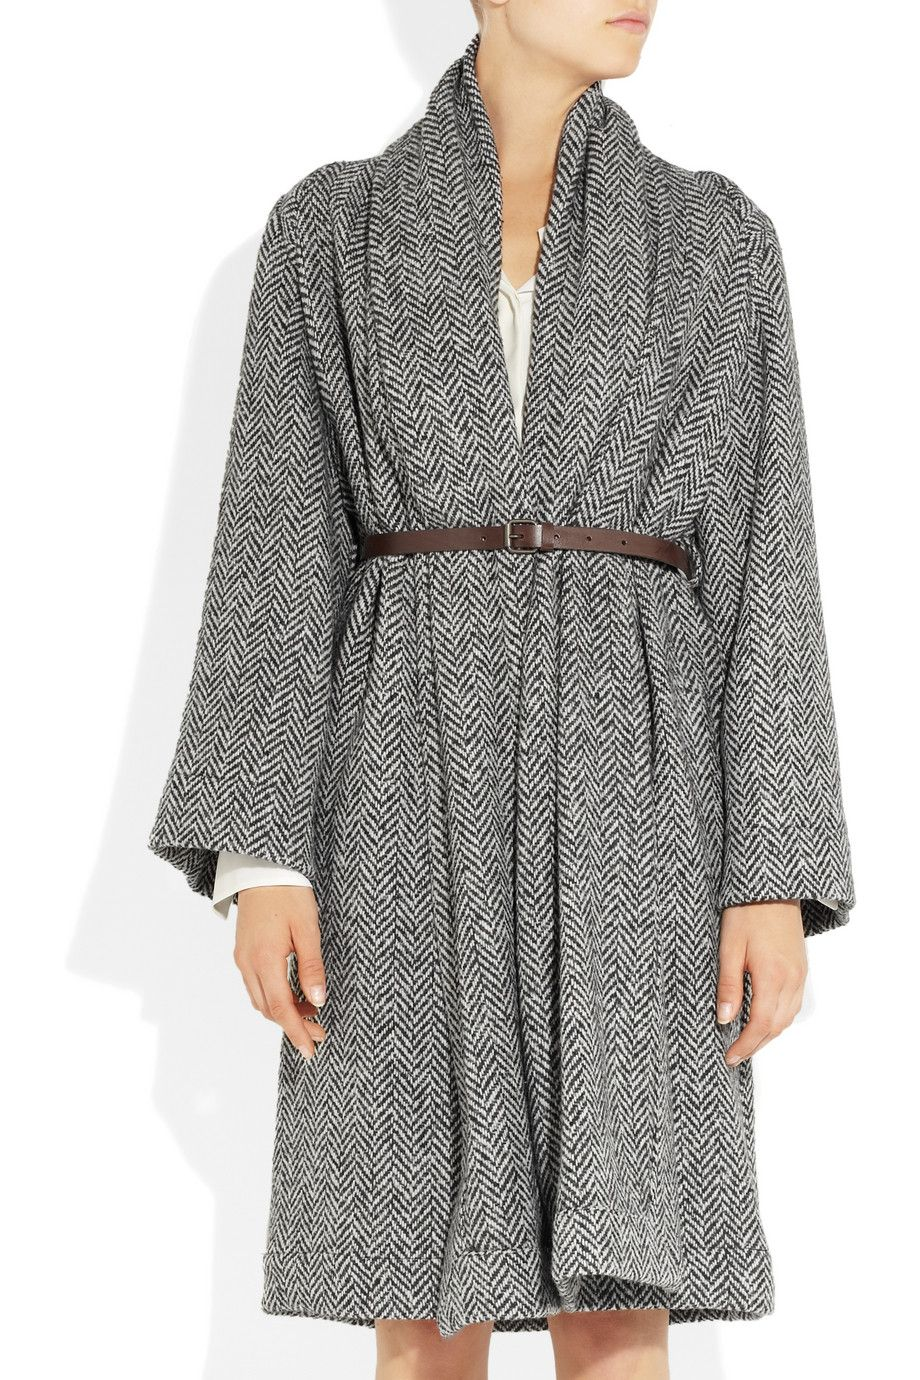 Vivienne Westwood Anglomania | Classic Gainsborough wool-blend coat